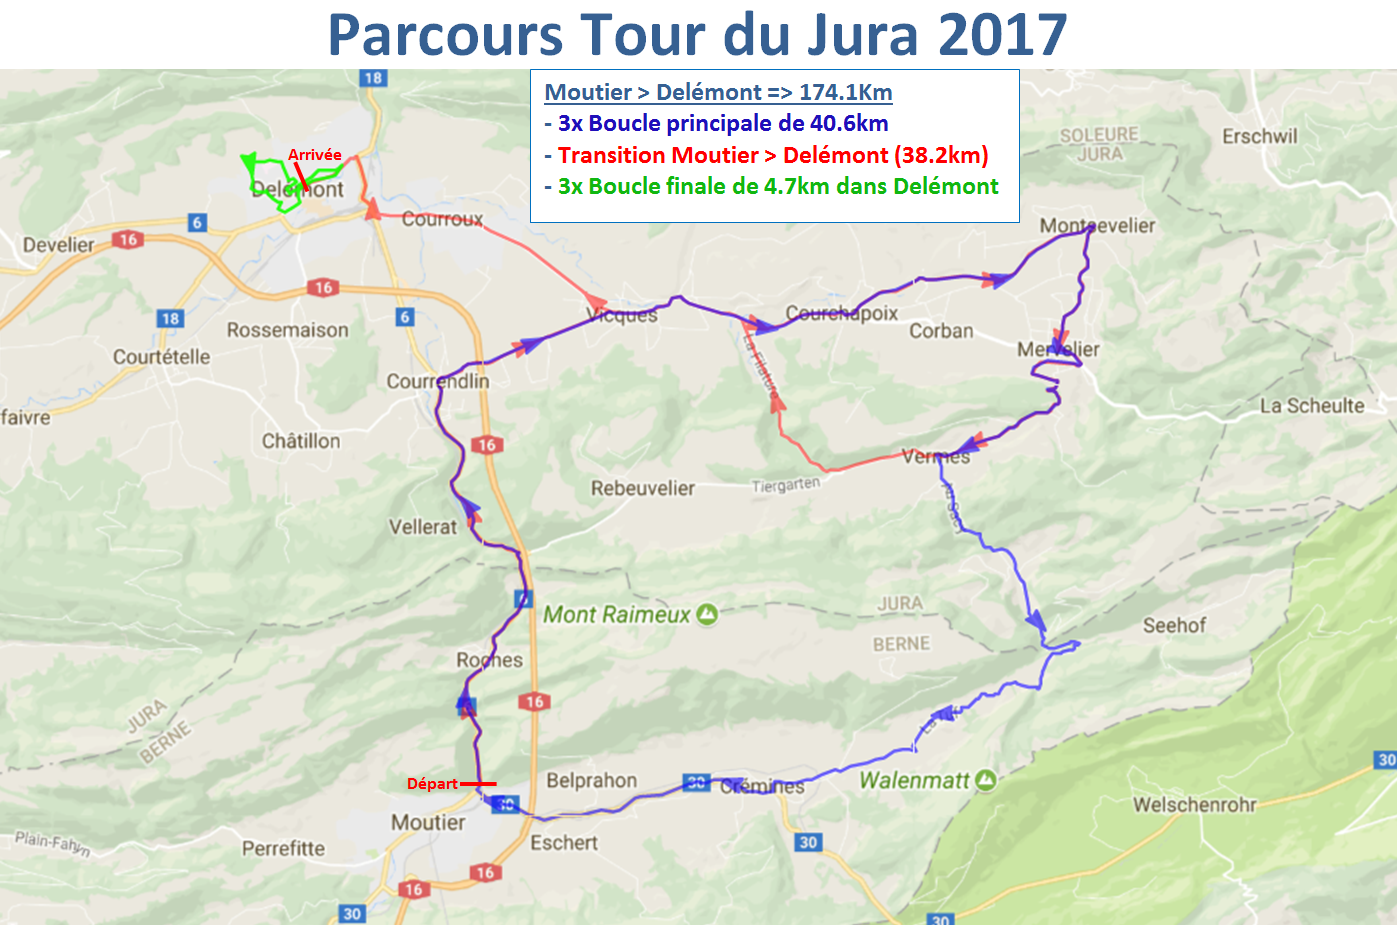 TDJ2017 CarteParcoursLegende